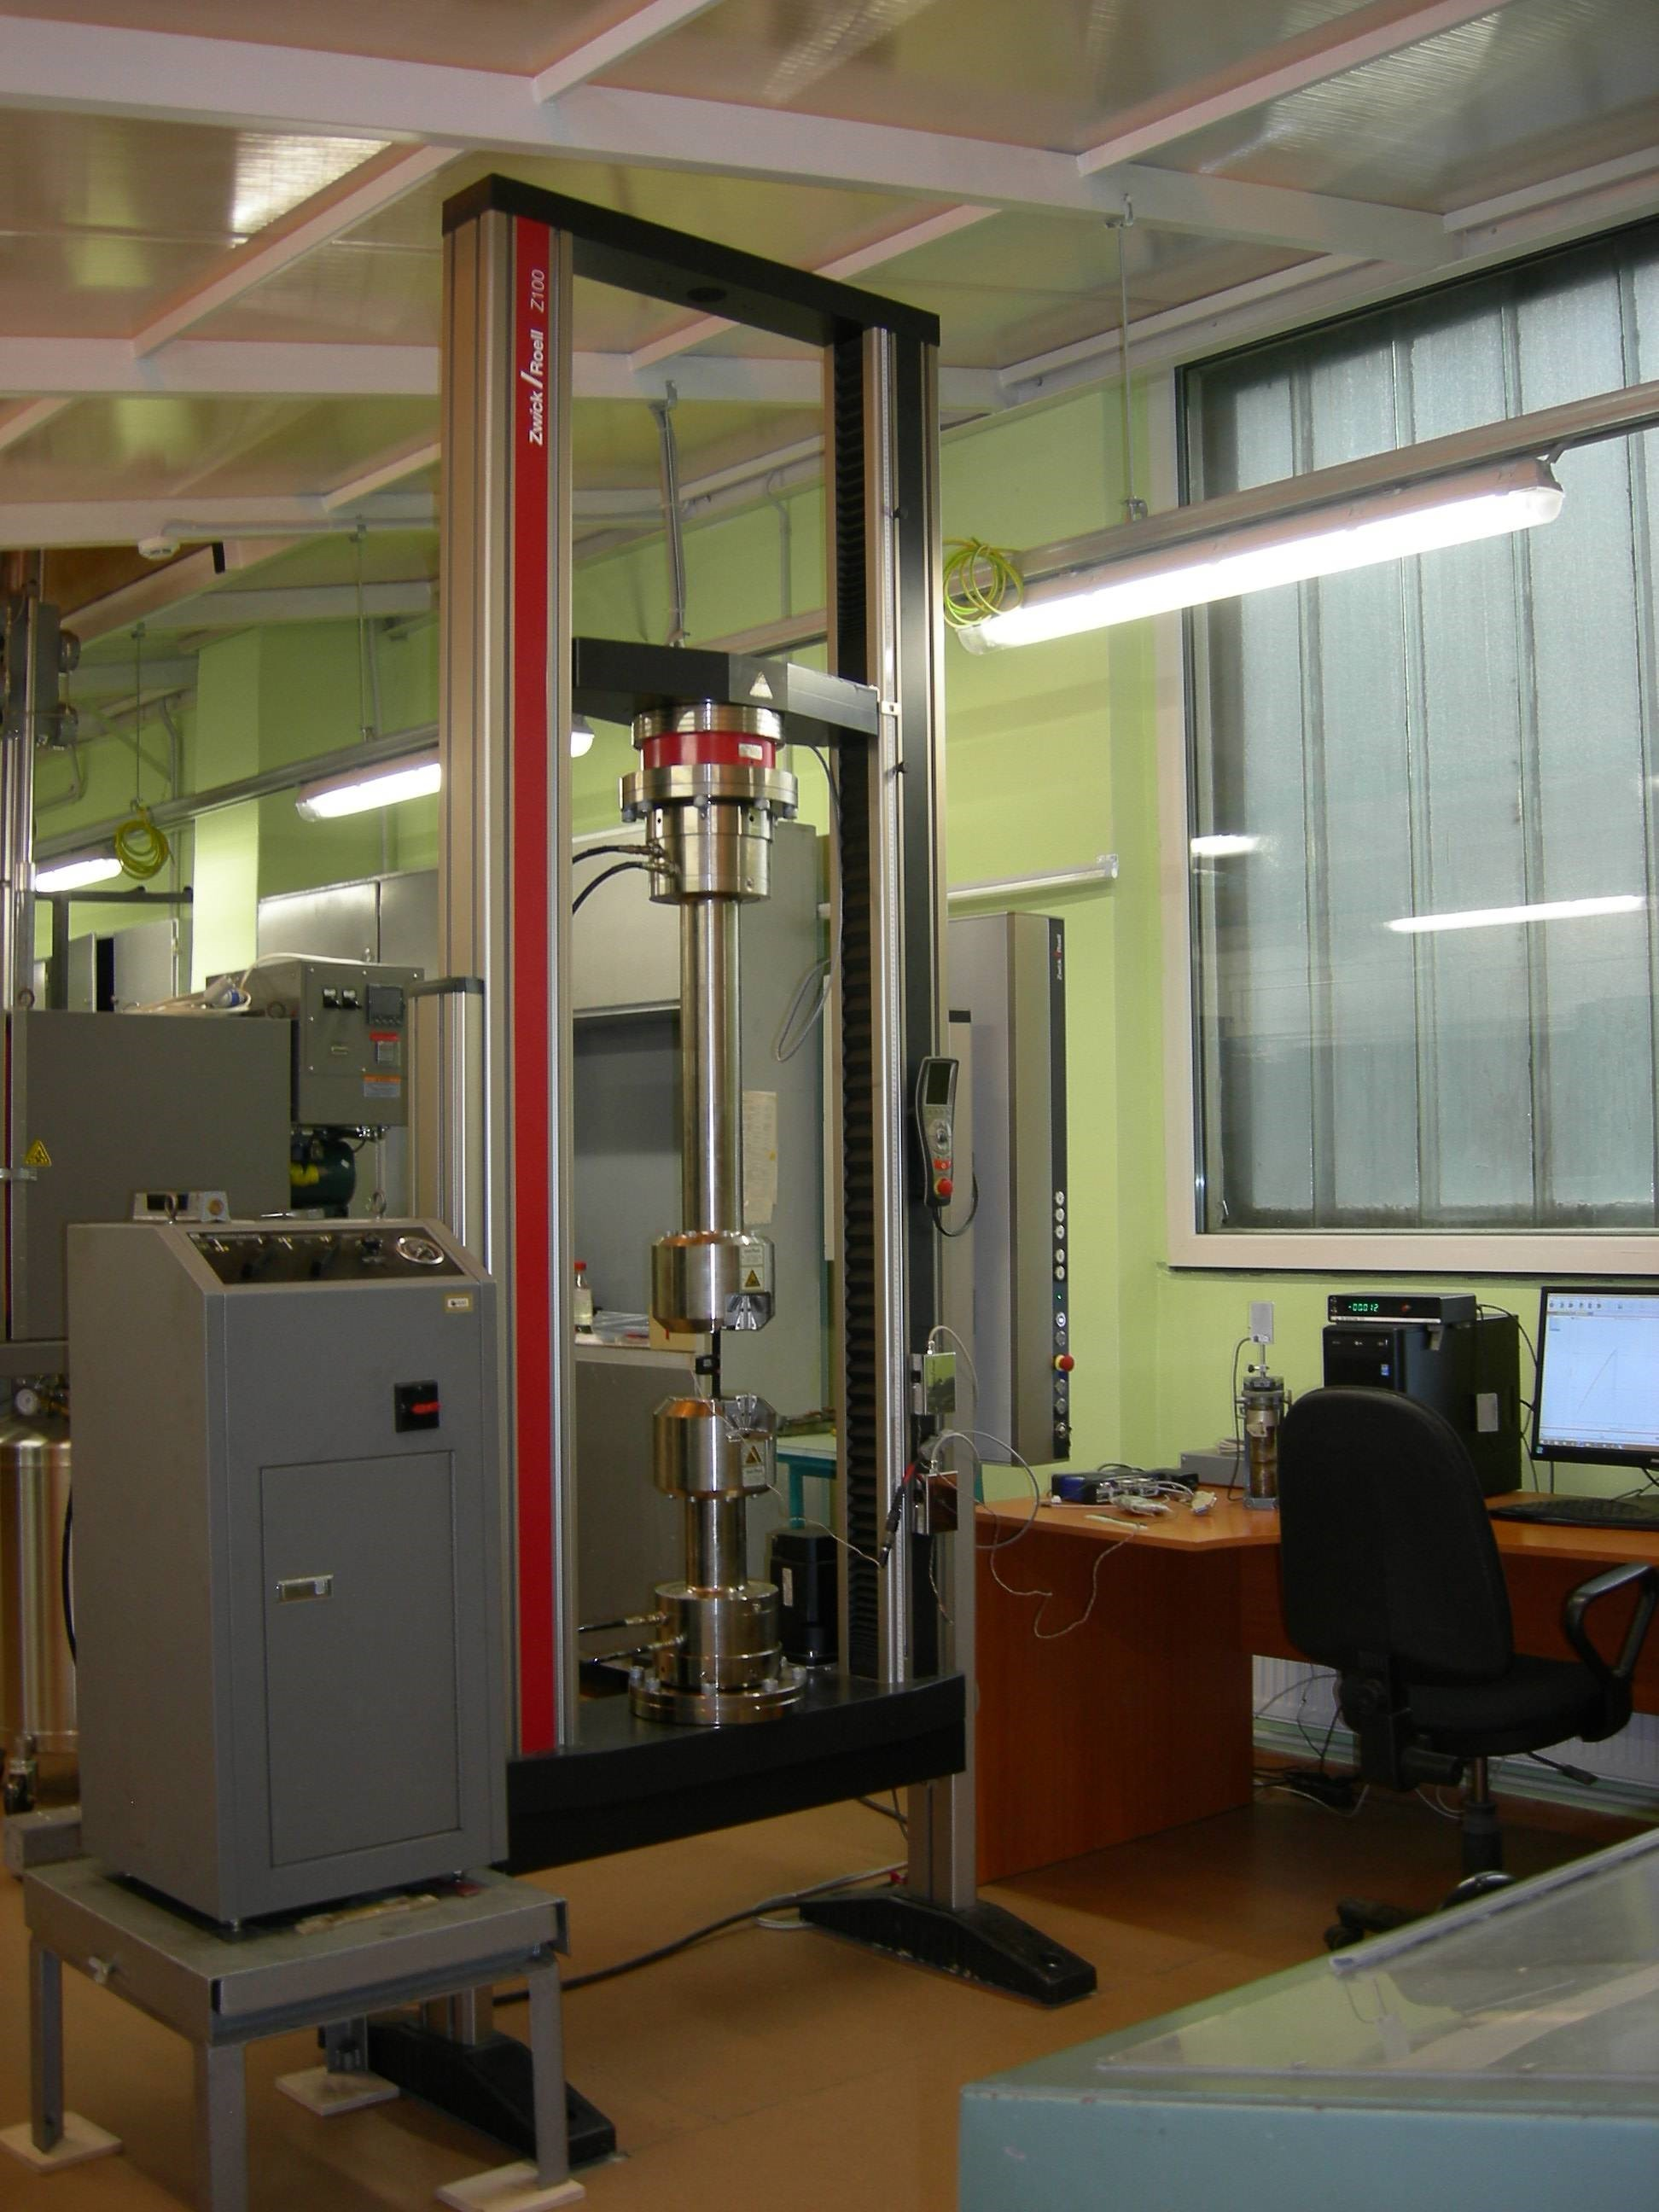 Material testing system